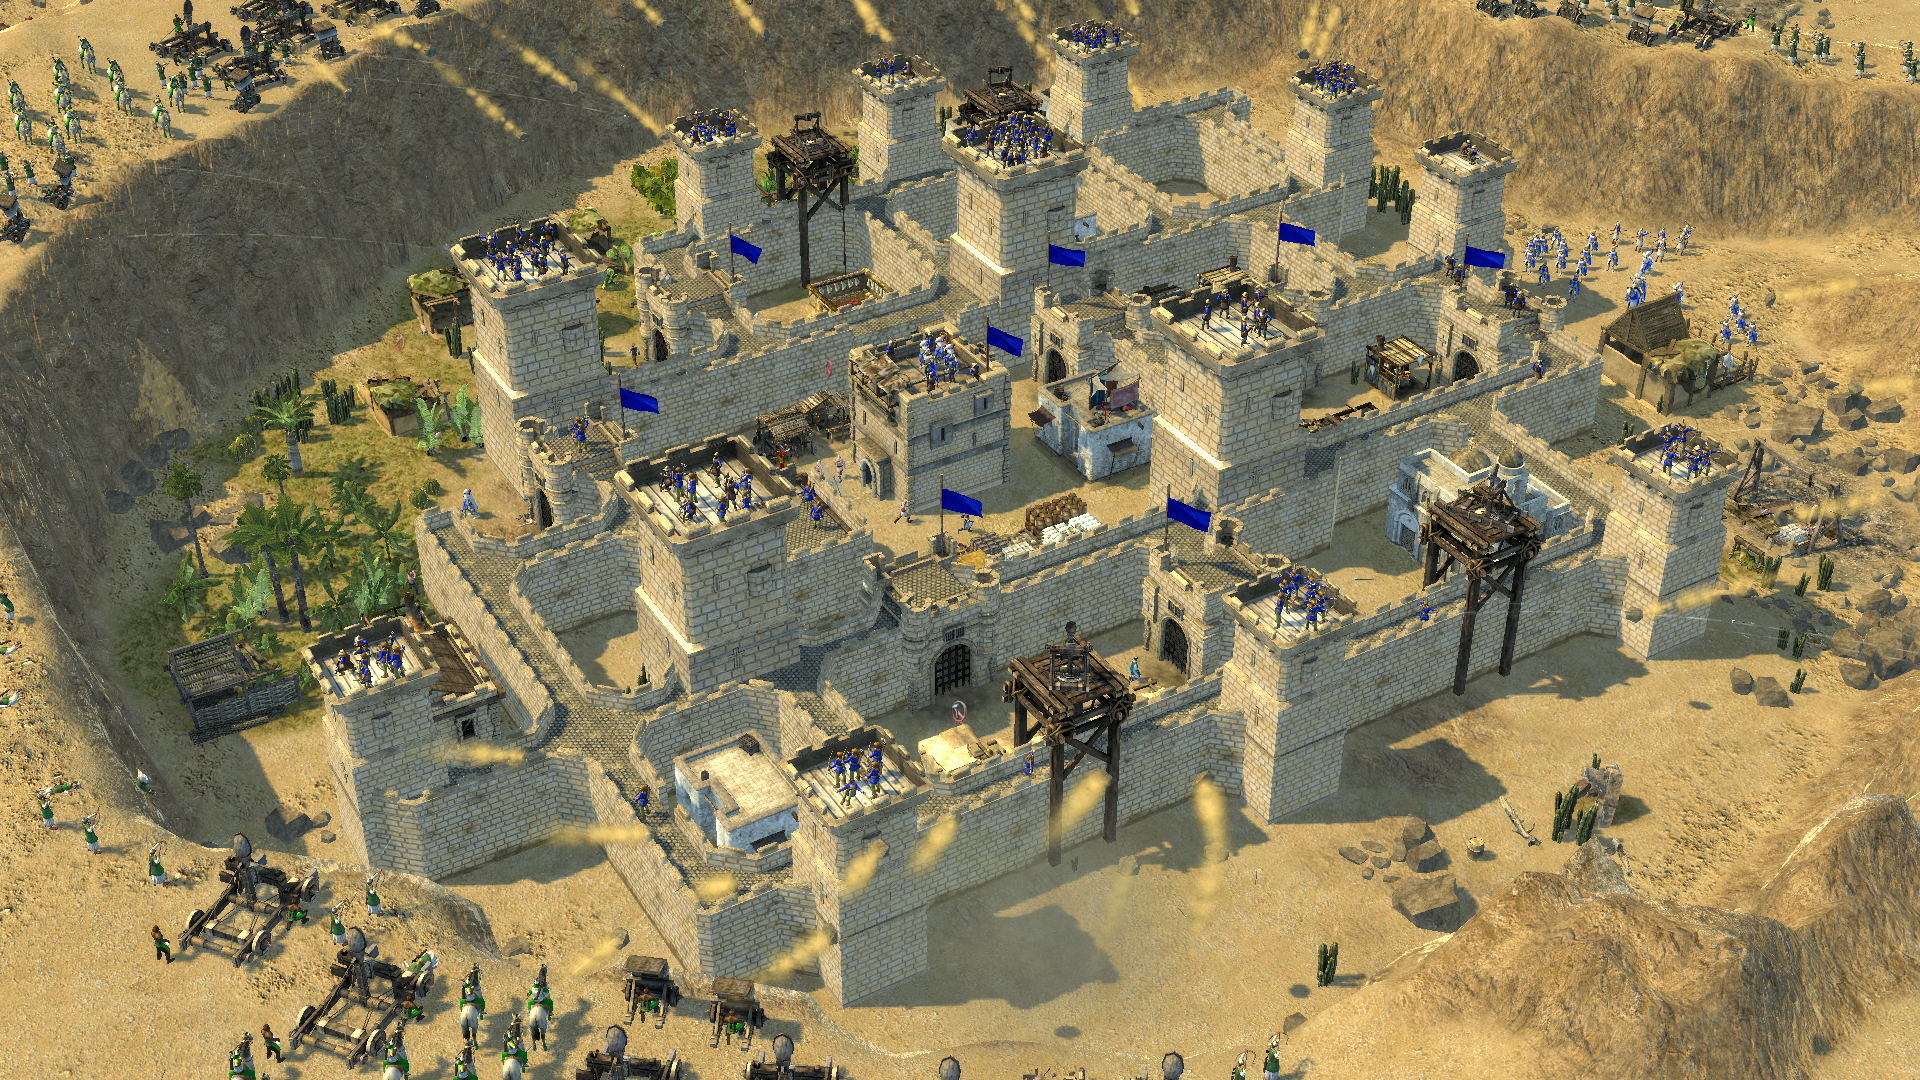 Stronghold Crusader II Special Edition Multilenguaje ESPAÑOL PC (PLAZA) + Update v1.0.19369 (FLTDOX) 2